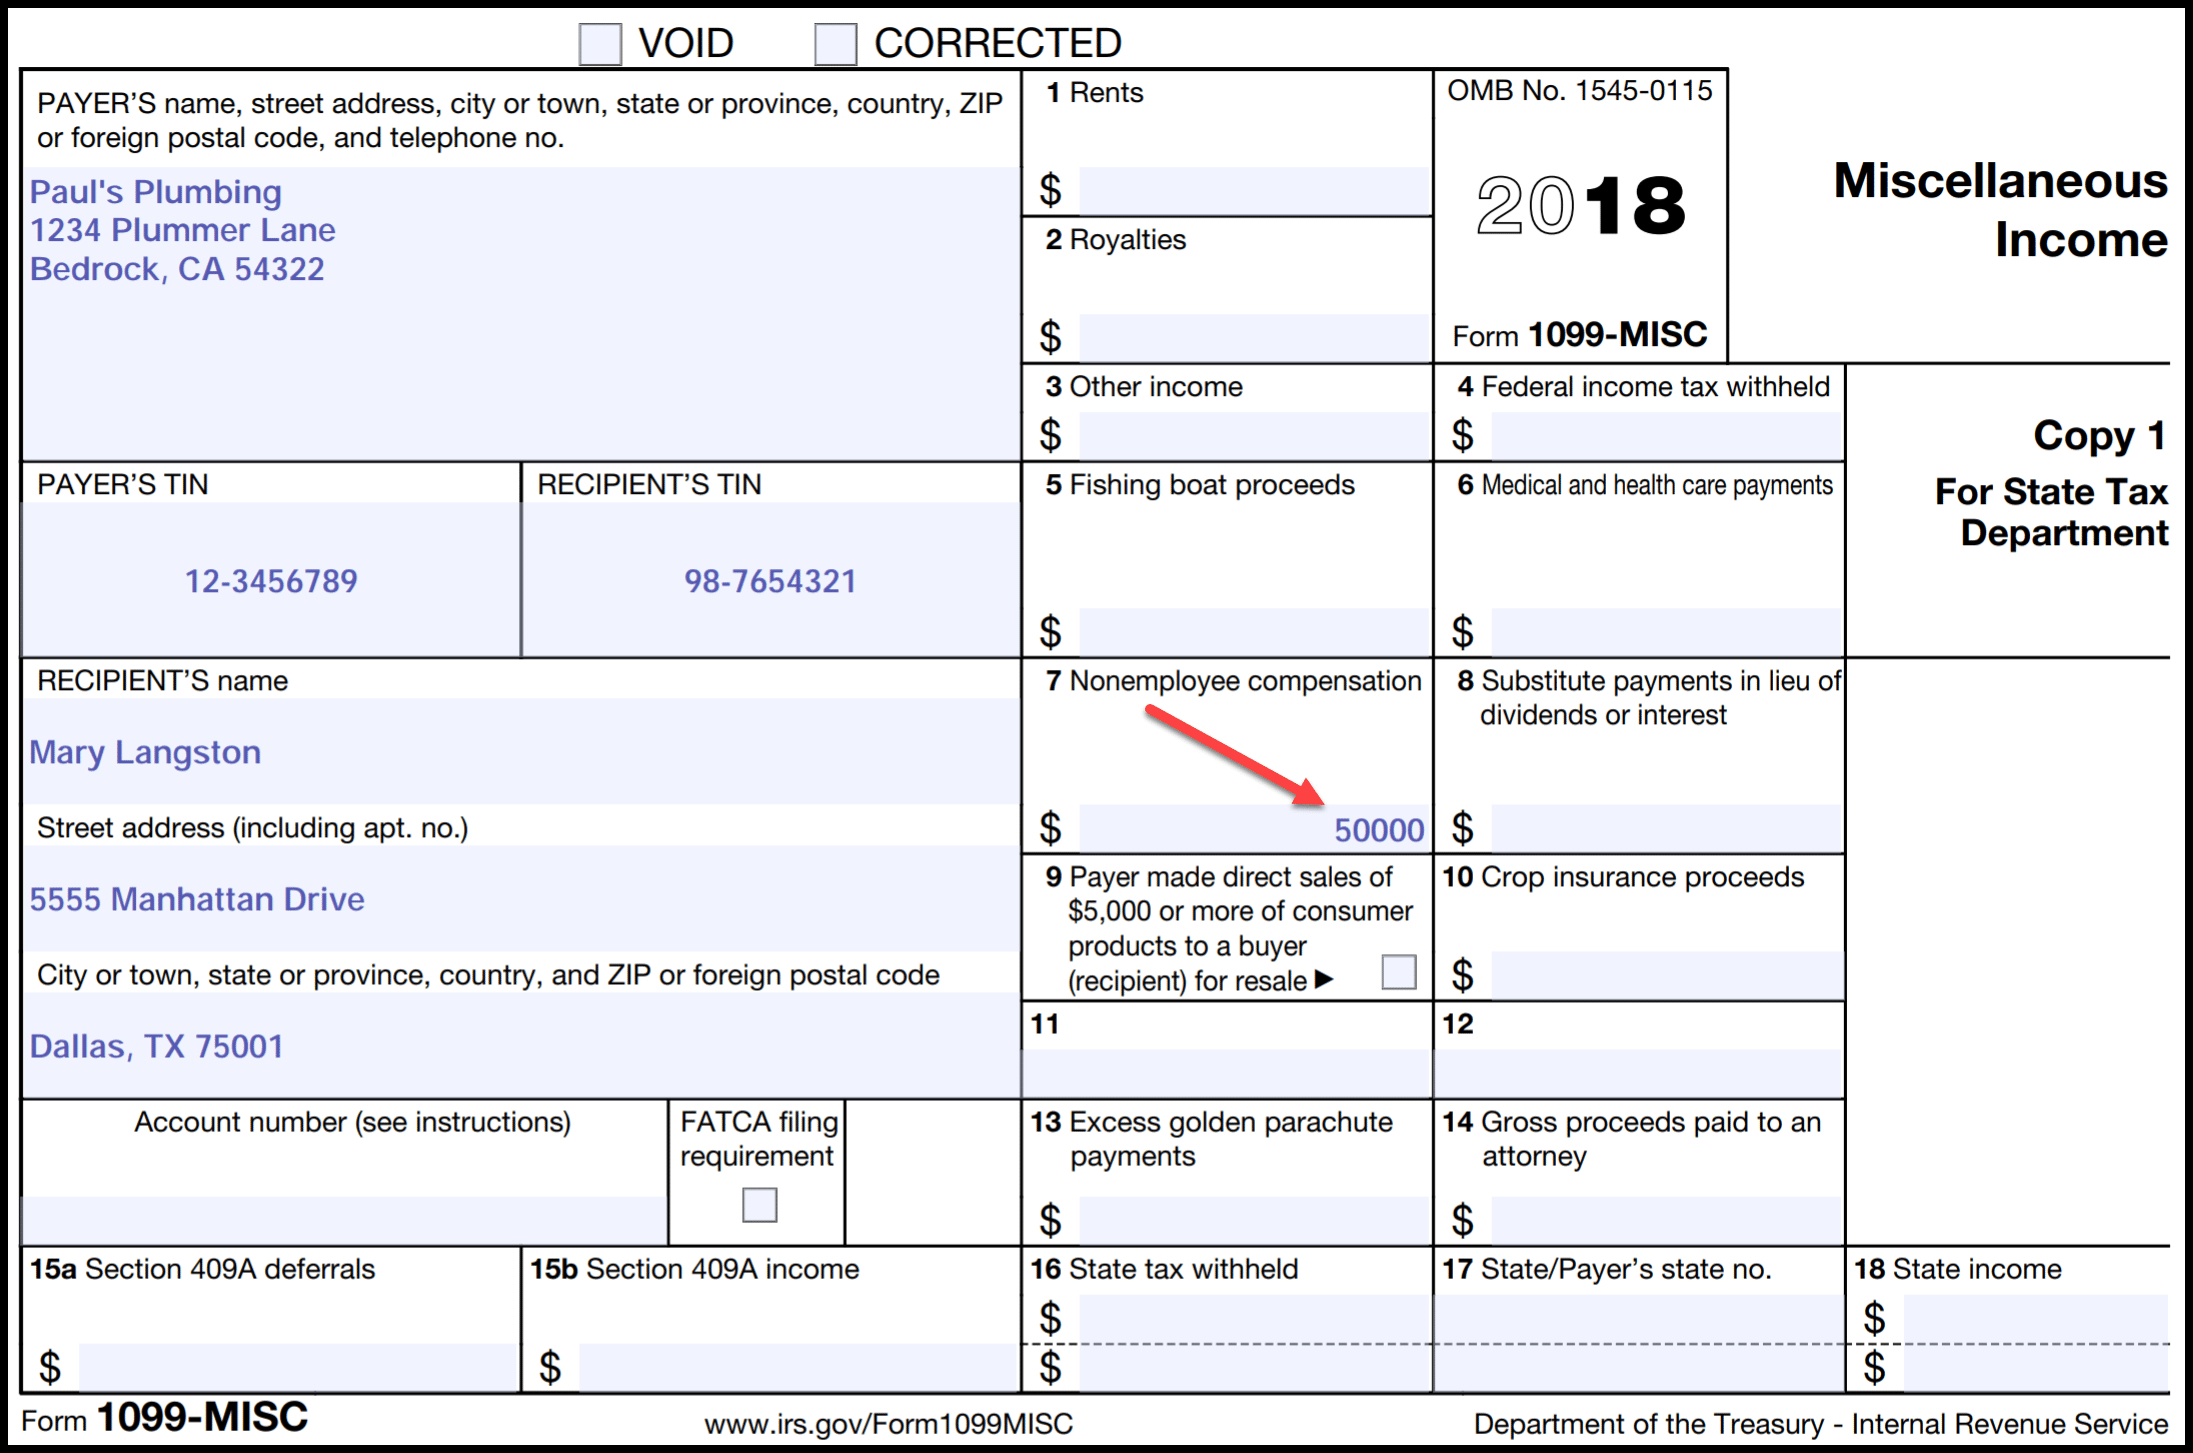 Irs Form 1099 Reporting For Small Business Owners - Free Printable 1099 Form